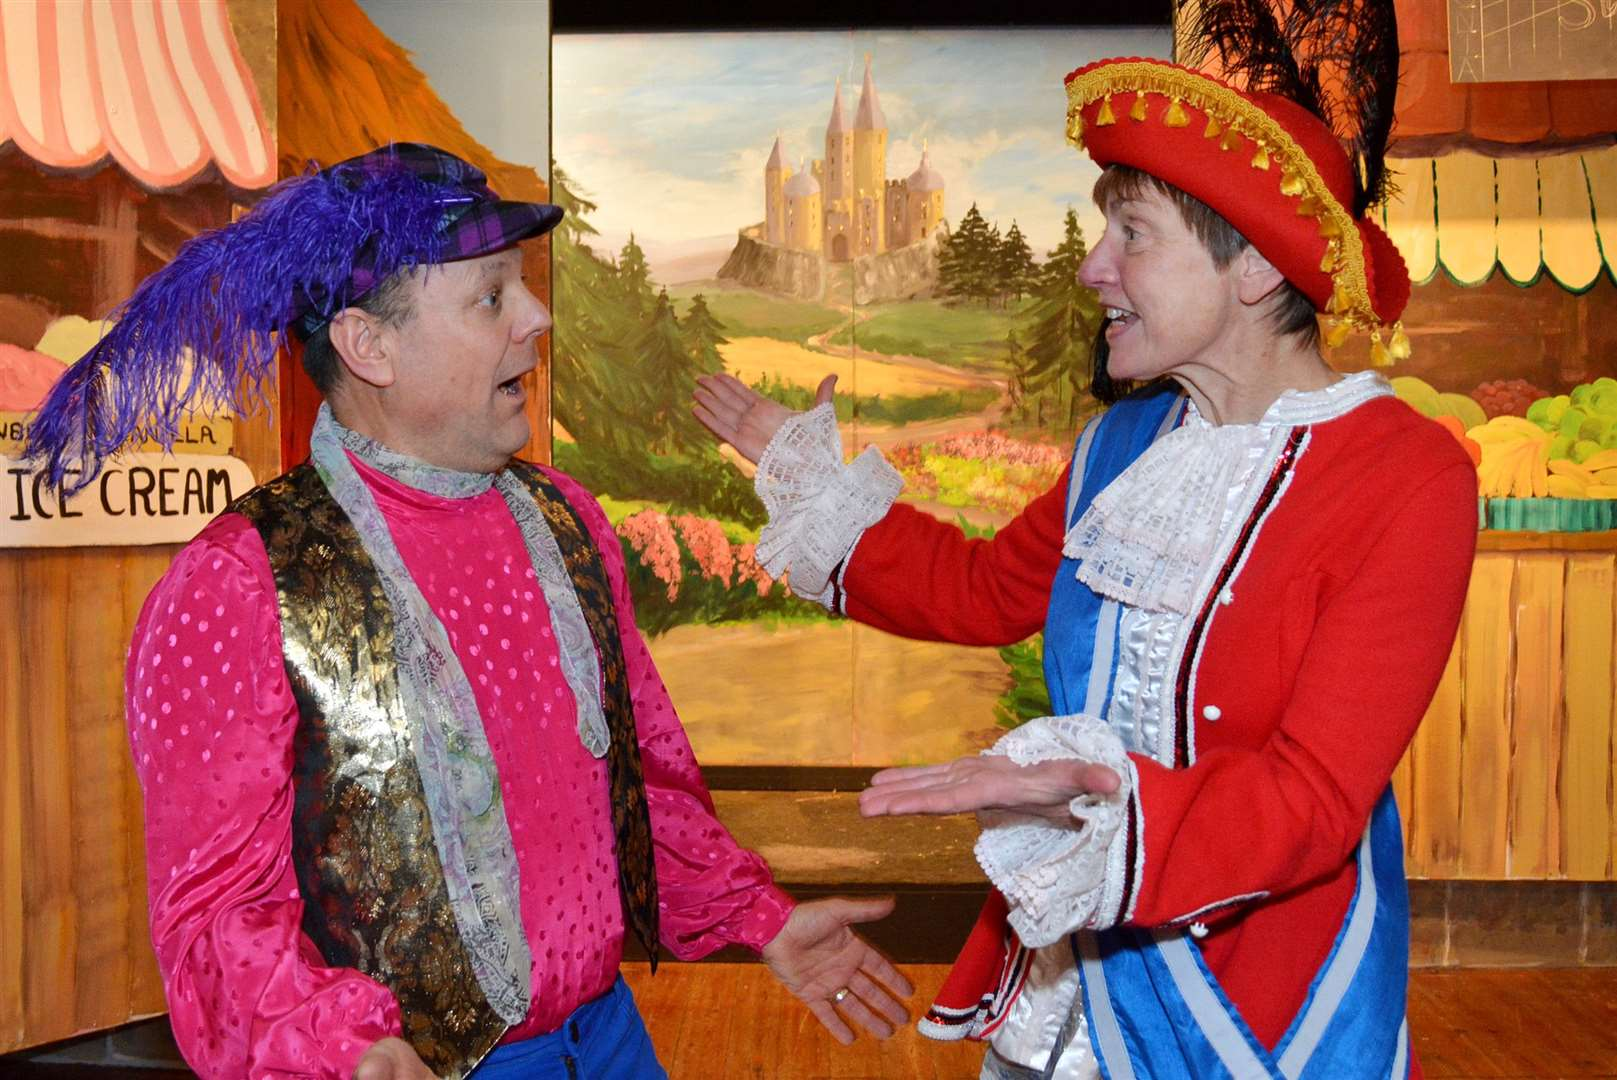 Dandini (Robert Kilbourn) and Prince Charming (Evette Price (Nccd0026) (6533083)